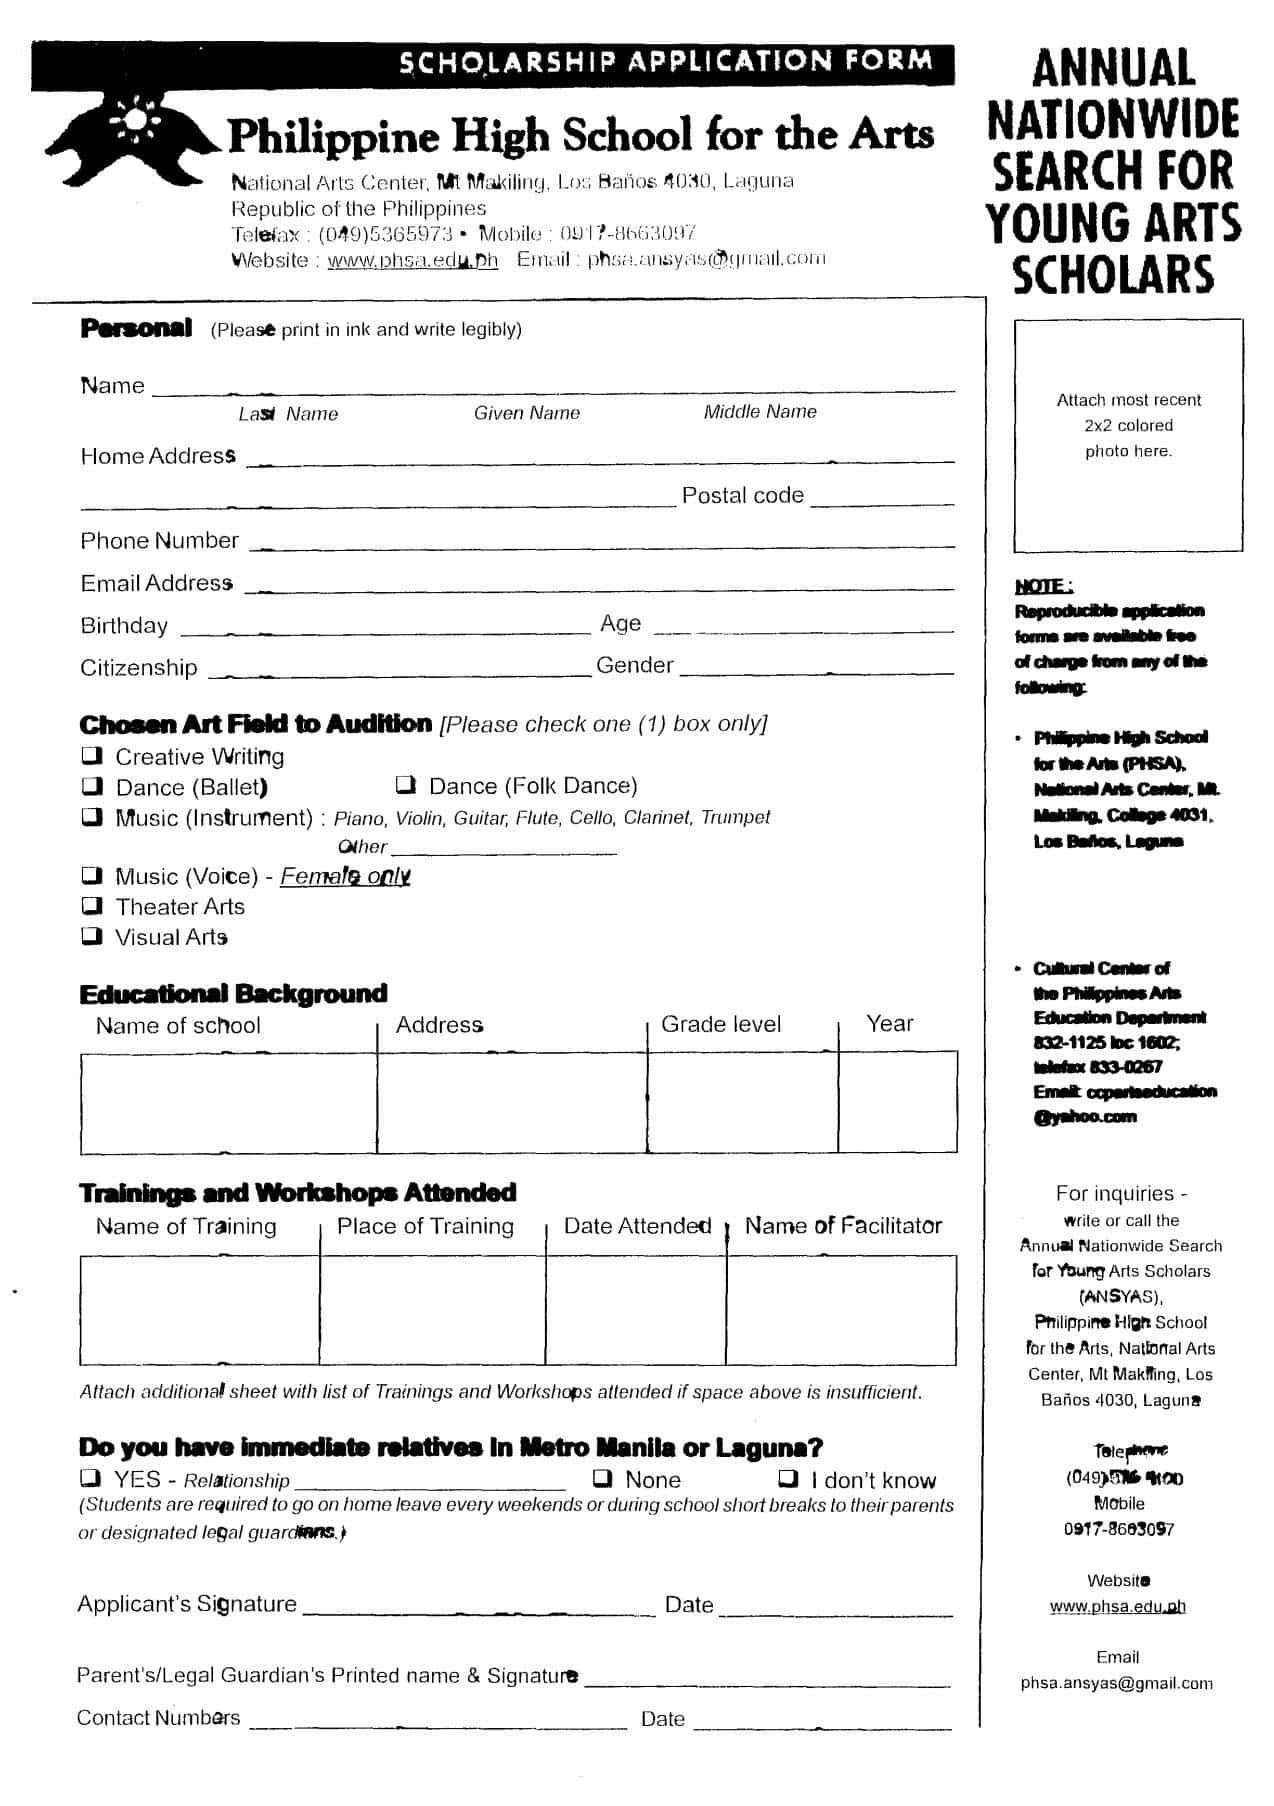 Philippine High School for the Arts Scholarship Form